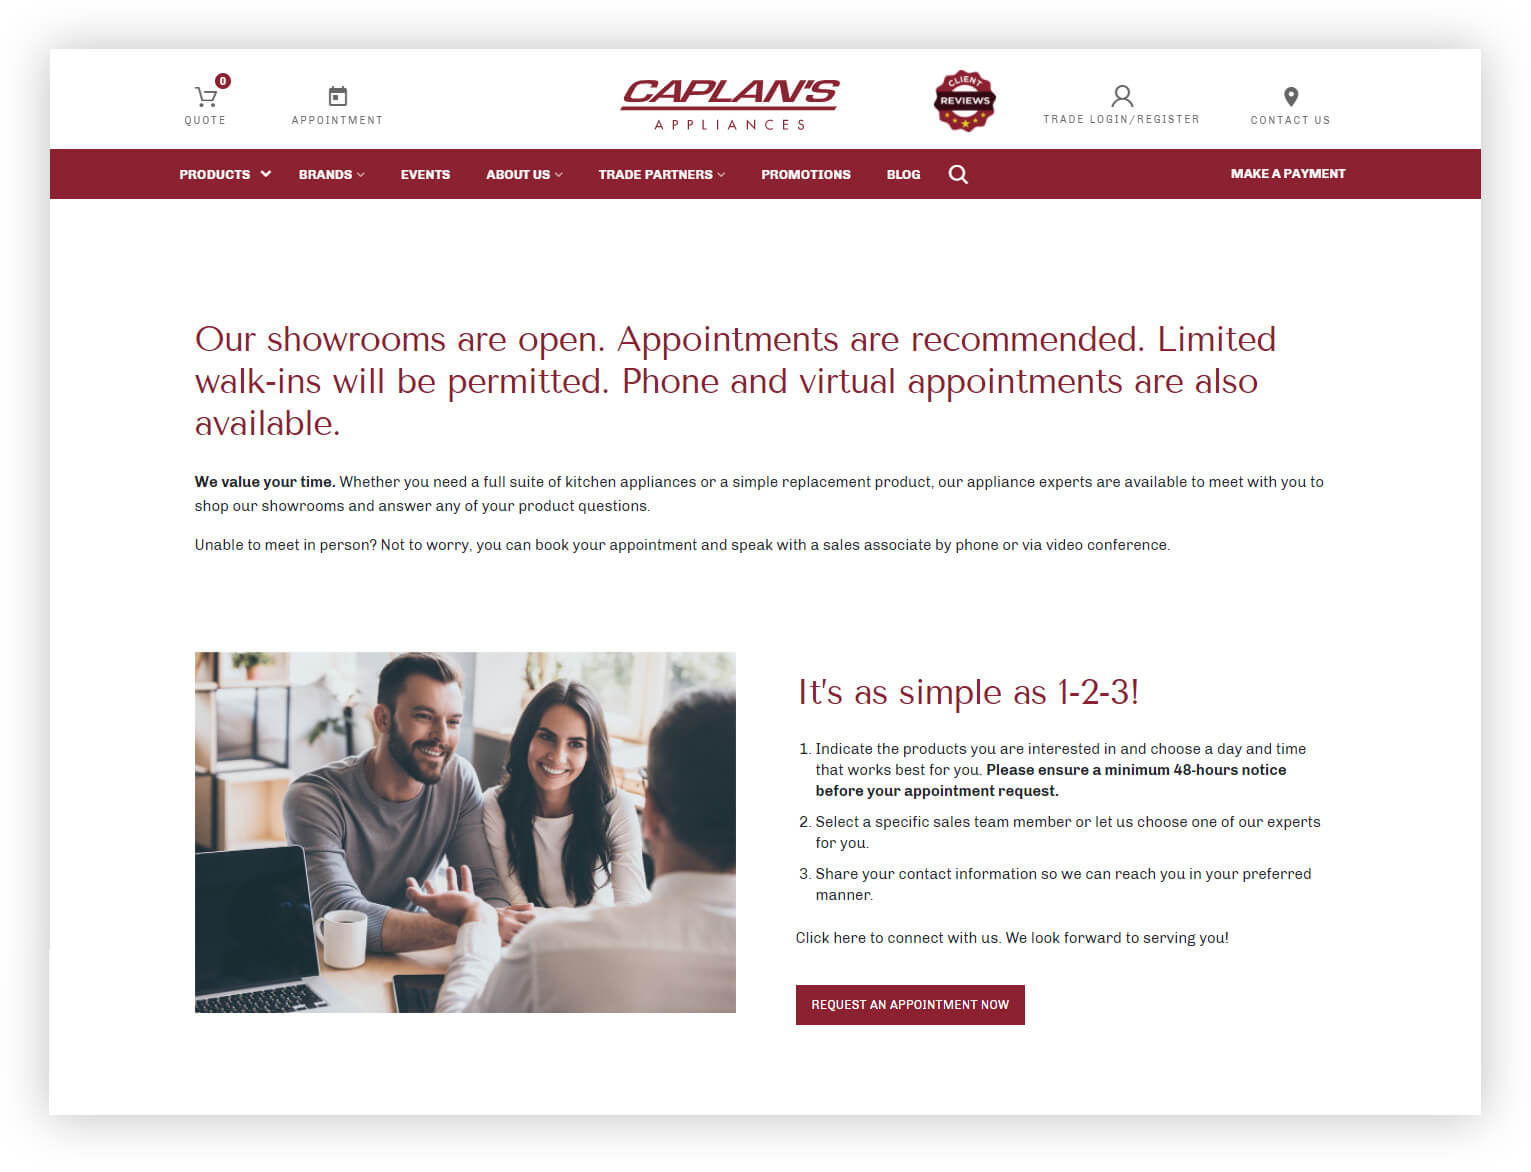 Caplan's Appliances appointment page